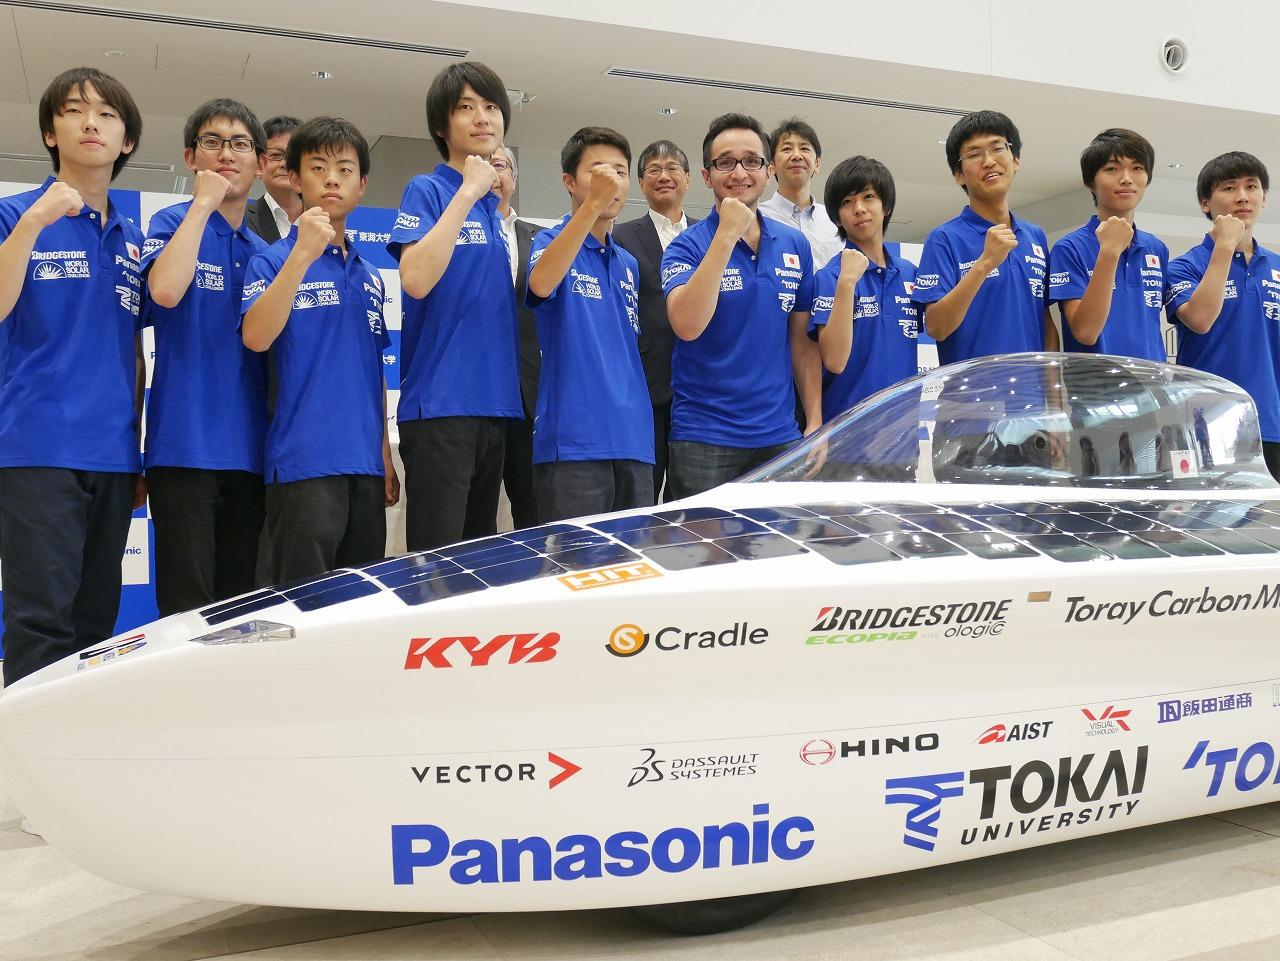 photo: Tokai Univ. solar car team